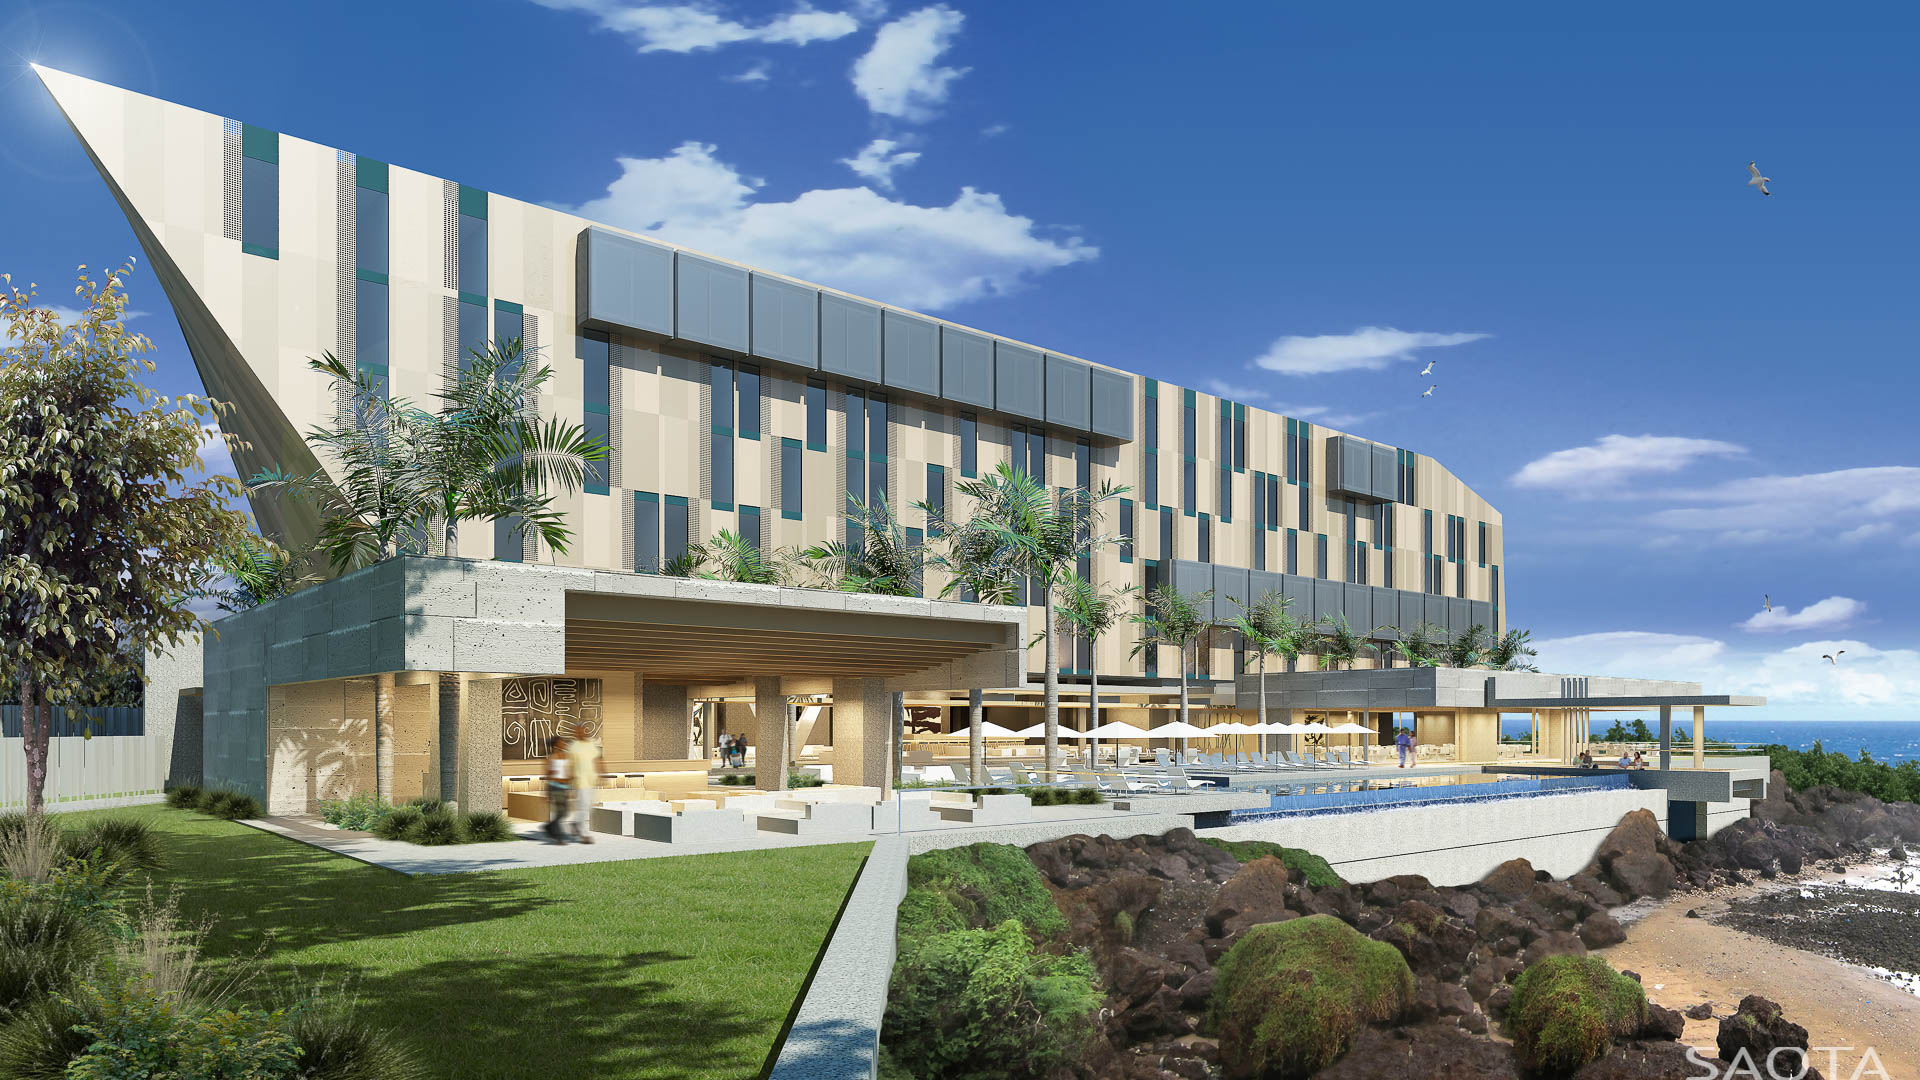 NOOM HOTEL CONAKRY IN GUINEA BY SAOTA